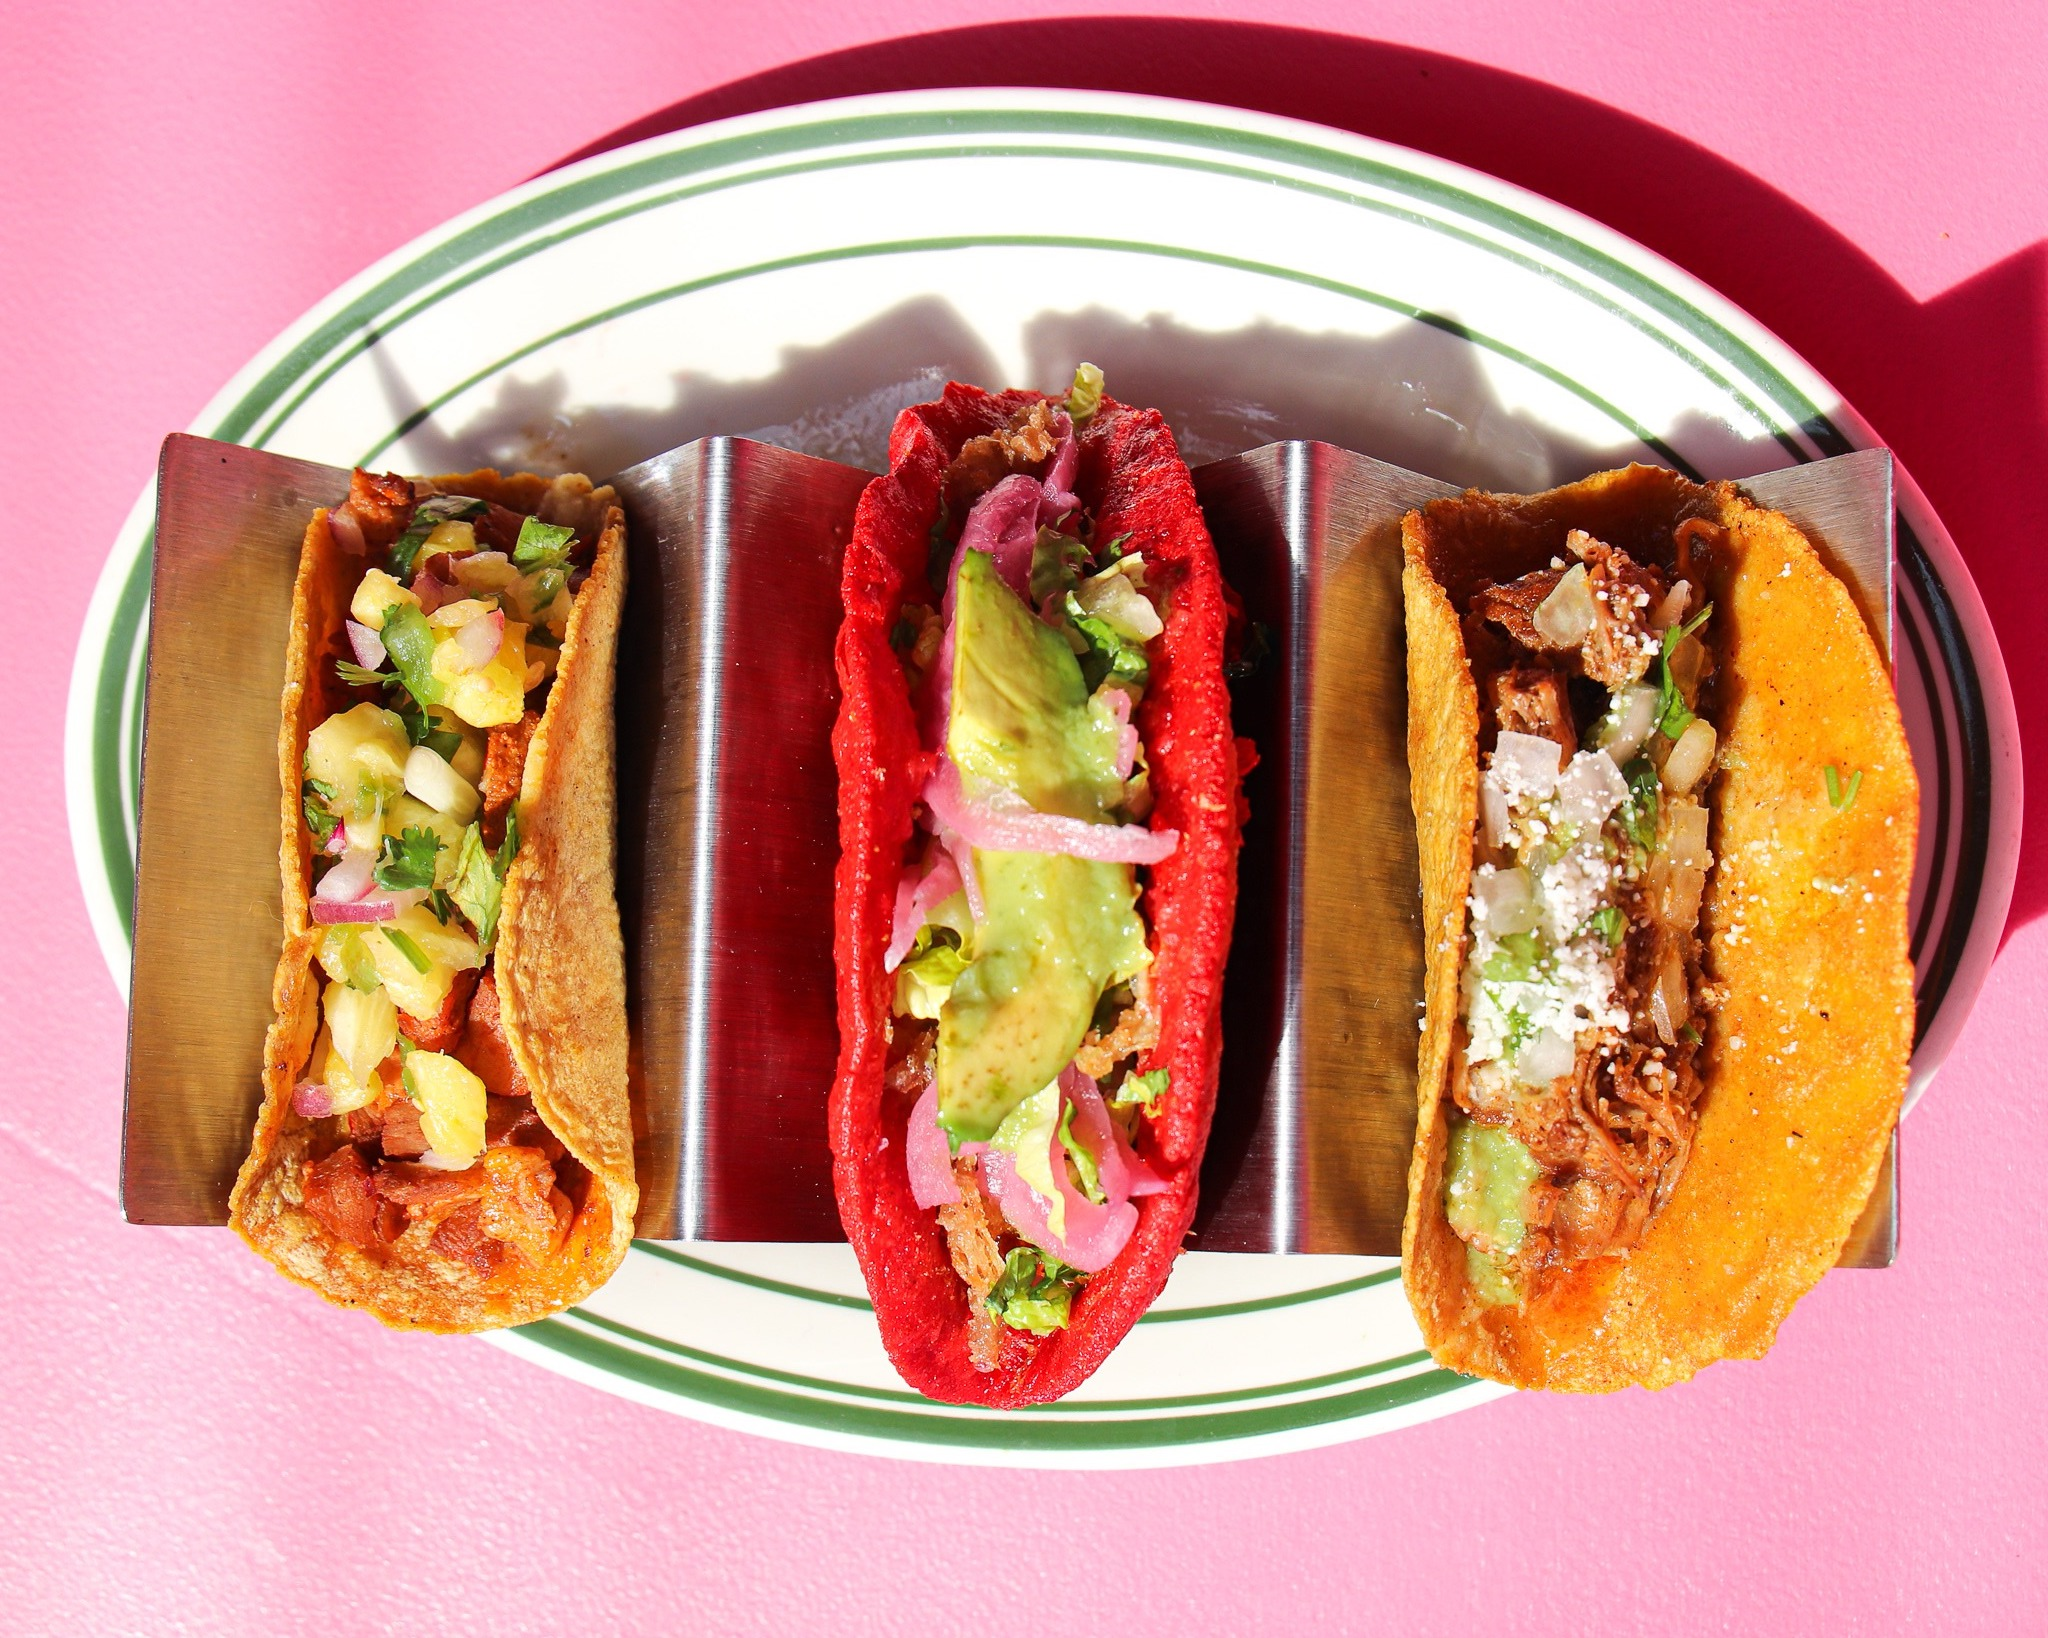 Three tacos from Pink Taco